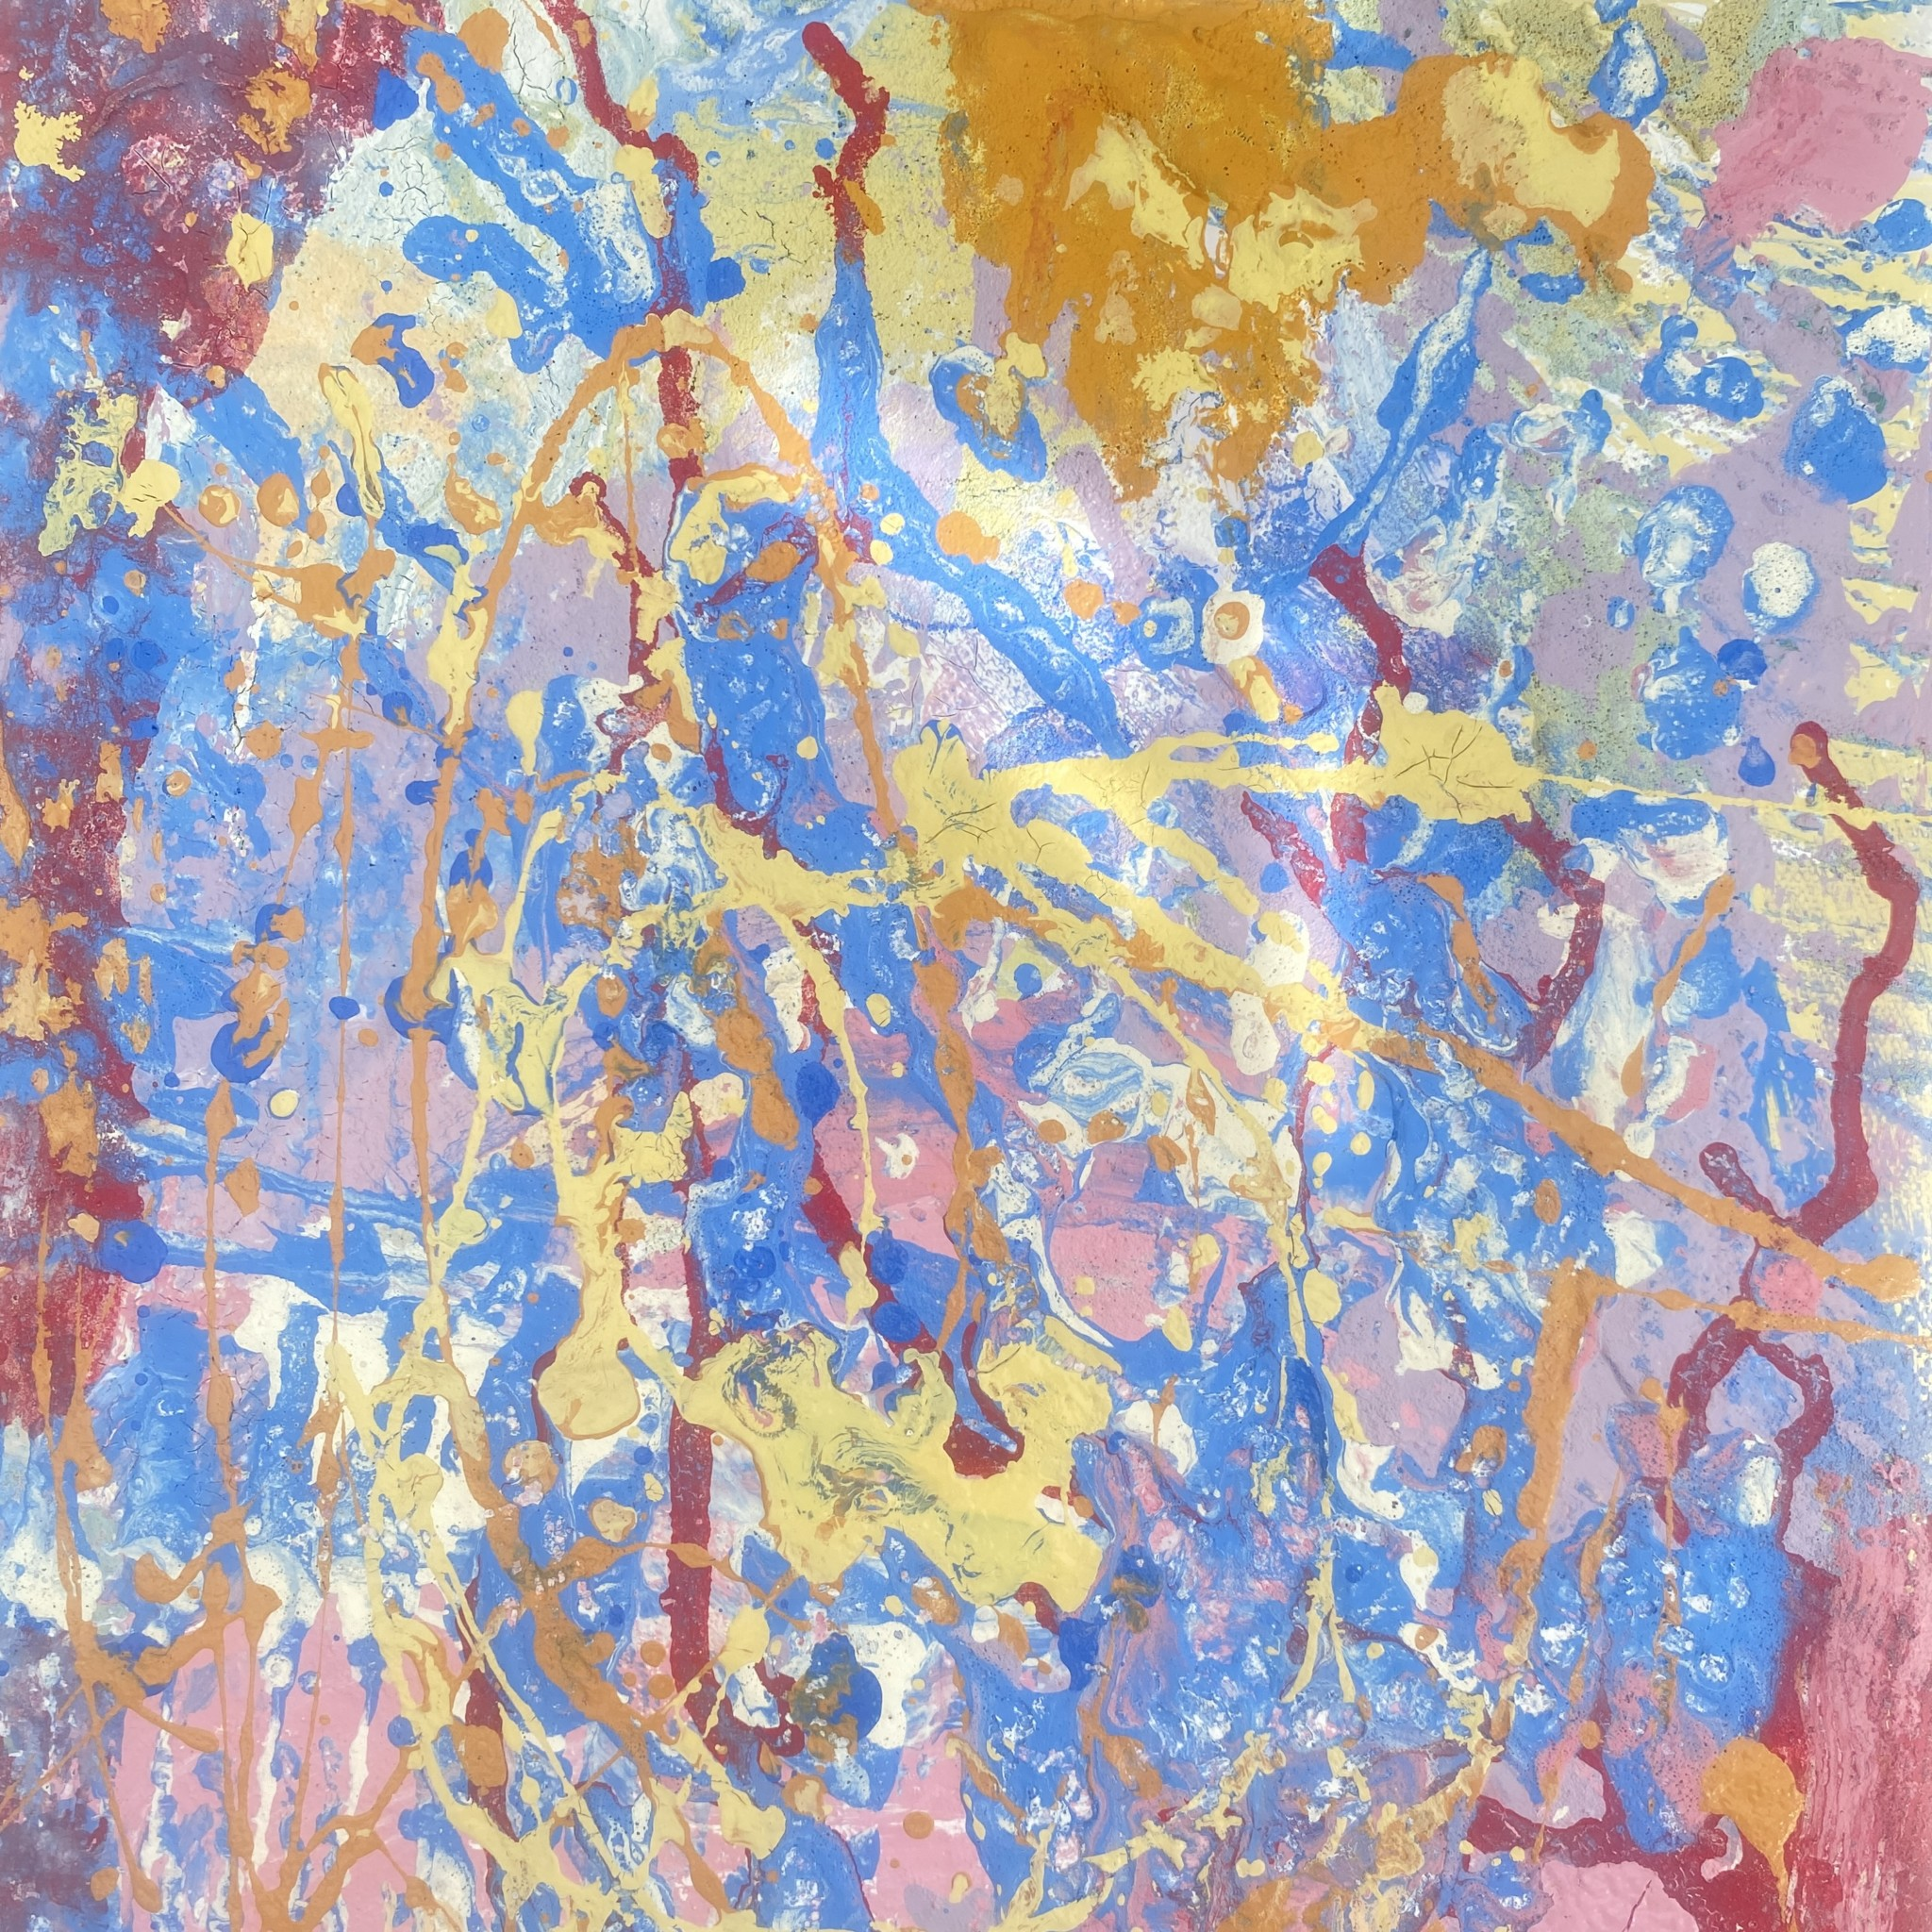 Elements an abstract original painting created with eco friendly compostable paints by Emily Duchscherer Kirk.